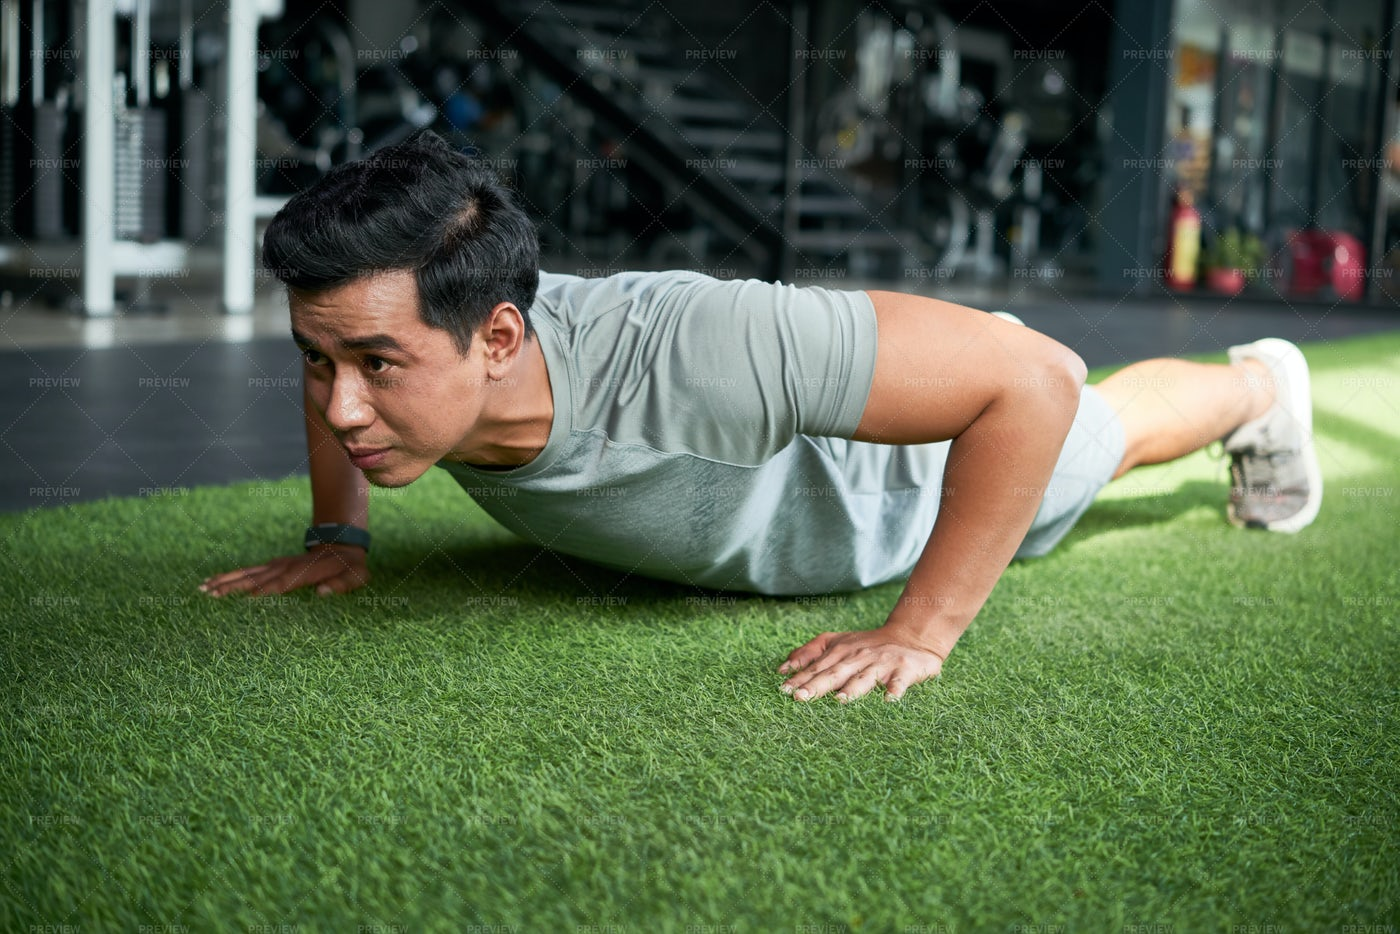 Man Exercising In Fitness Club: Stock Photos